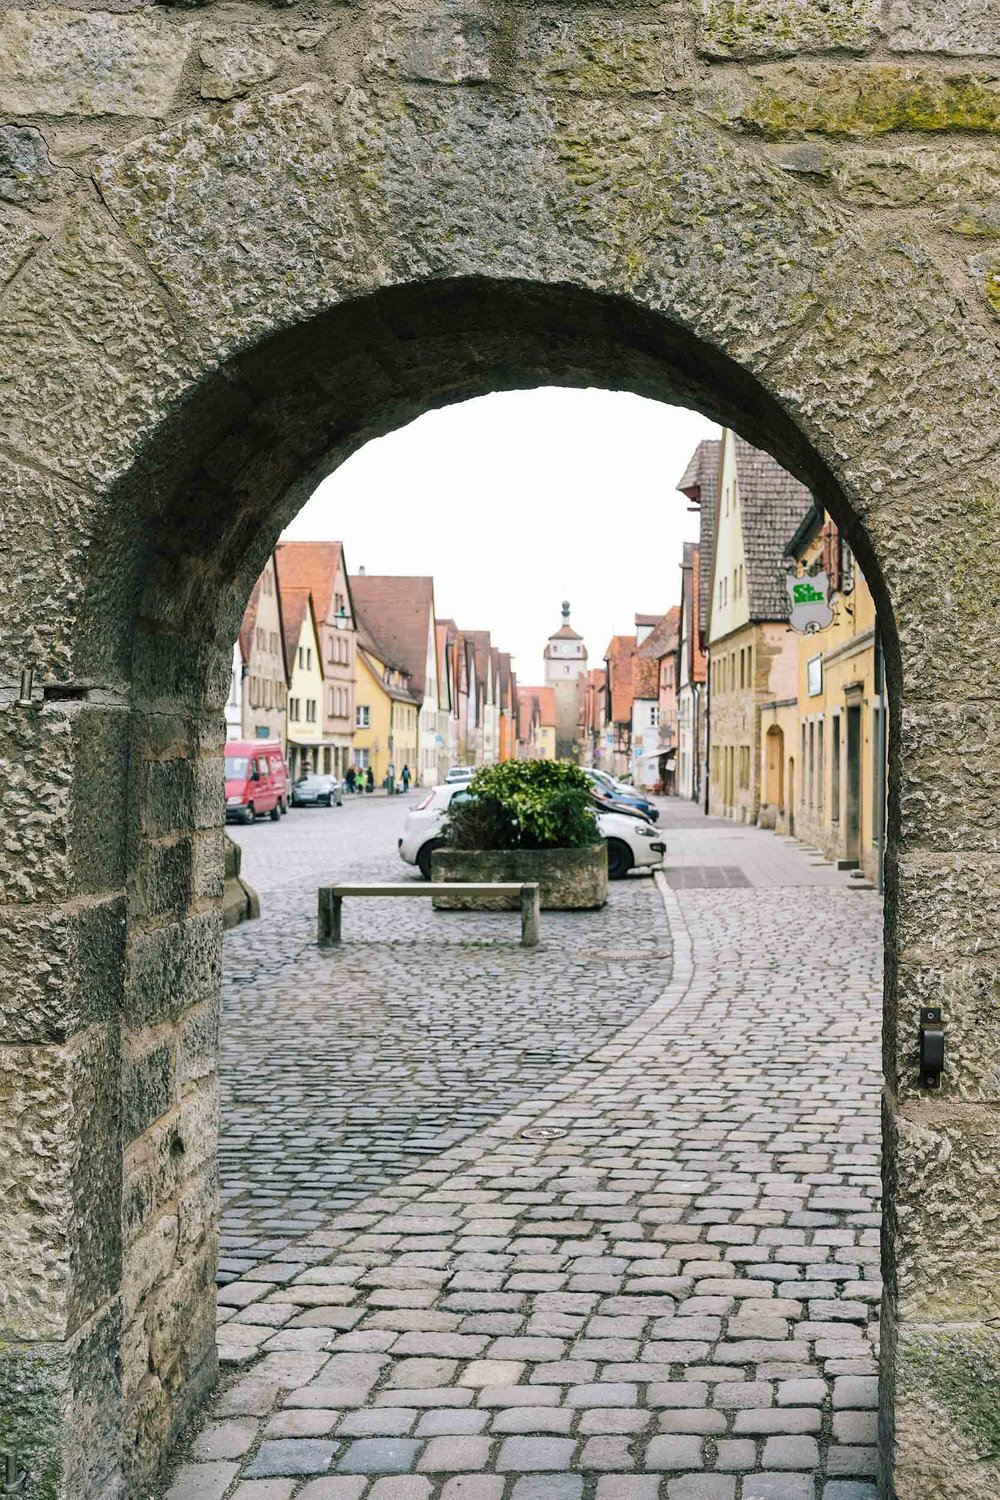 The entry to the medieval part of Rothenburg